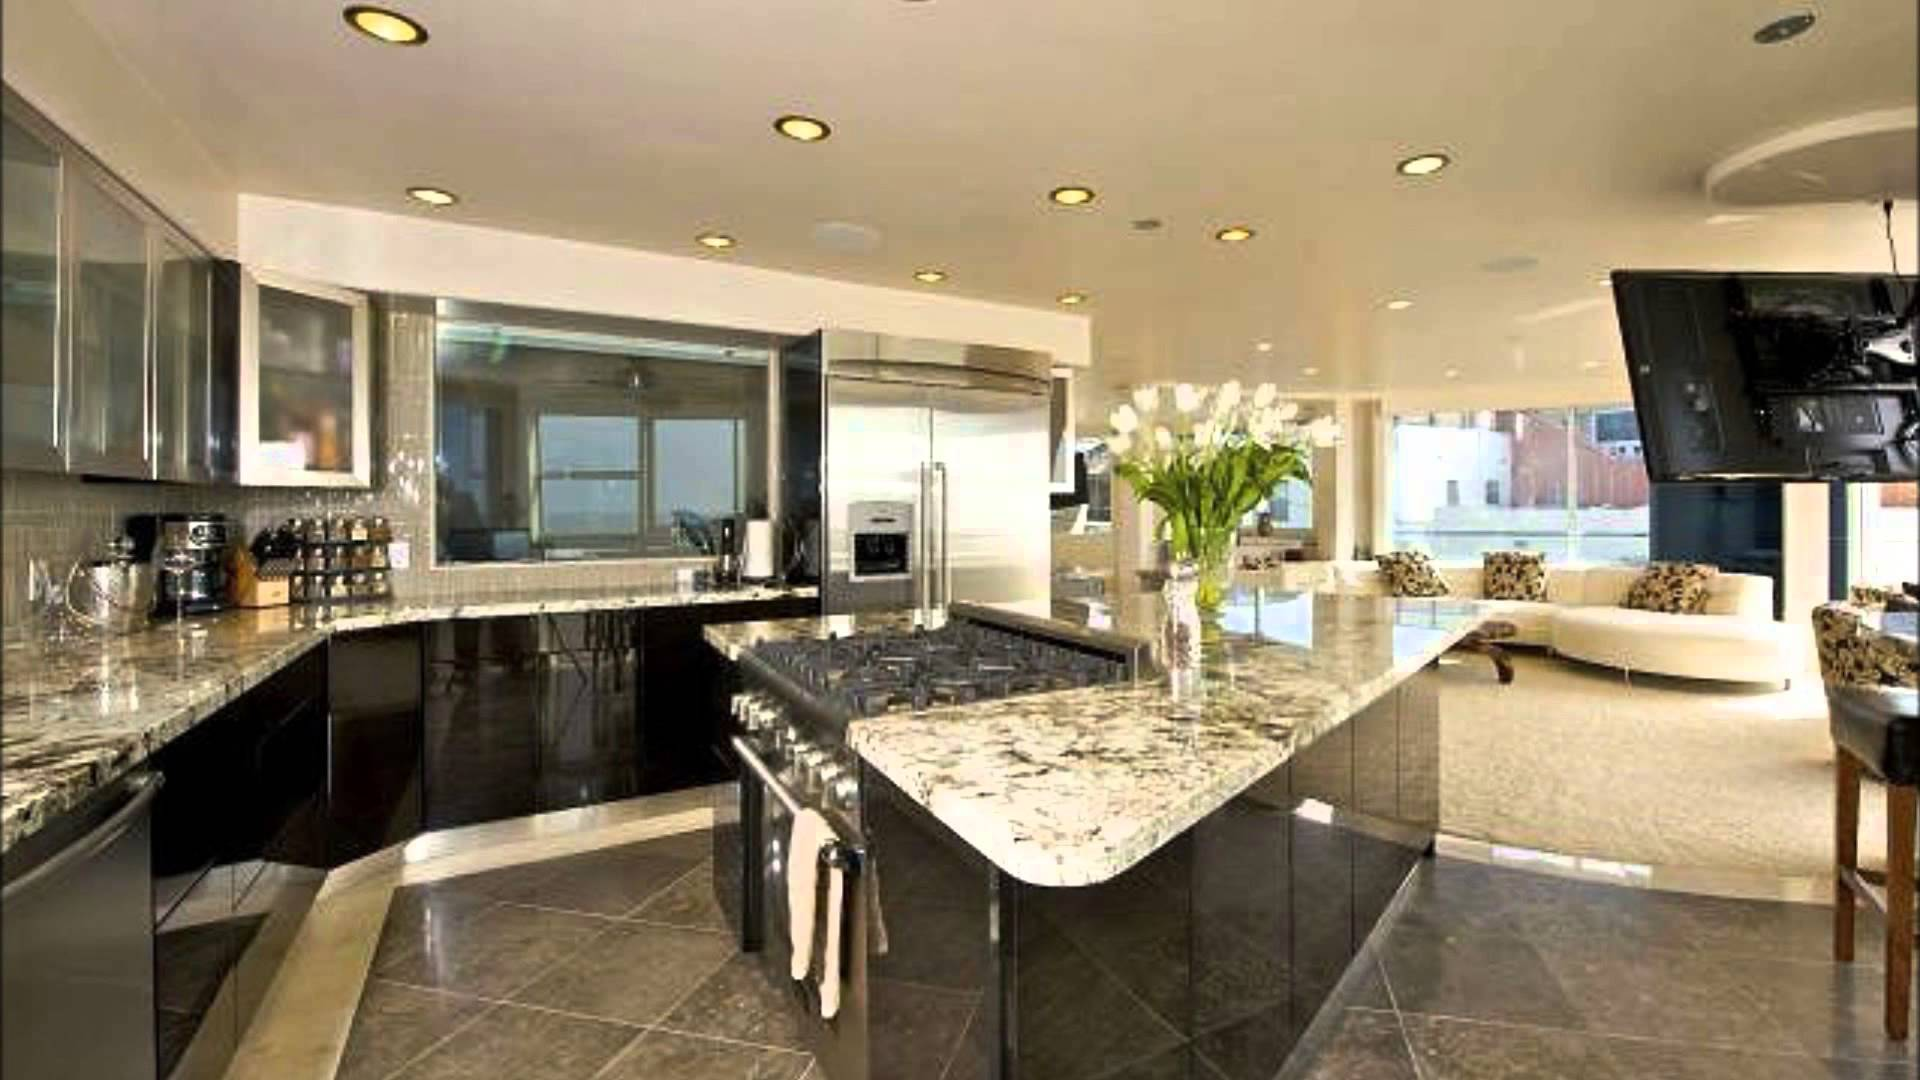 Design your own kitchen ideas with images for Kitchen ideas design